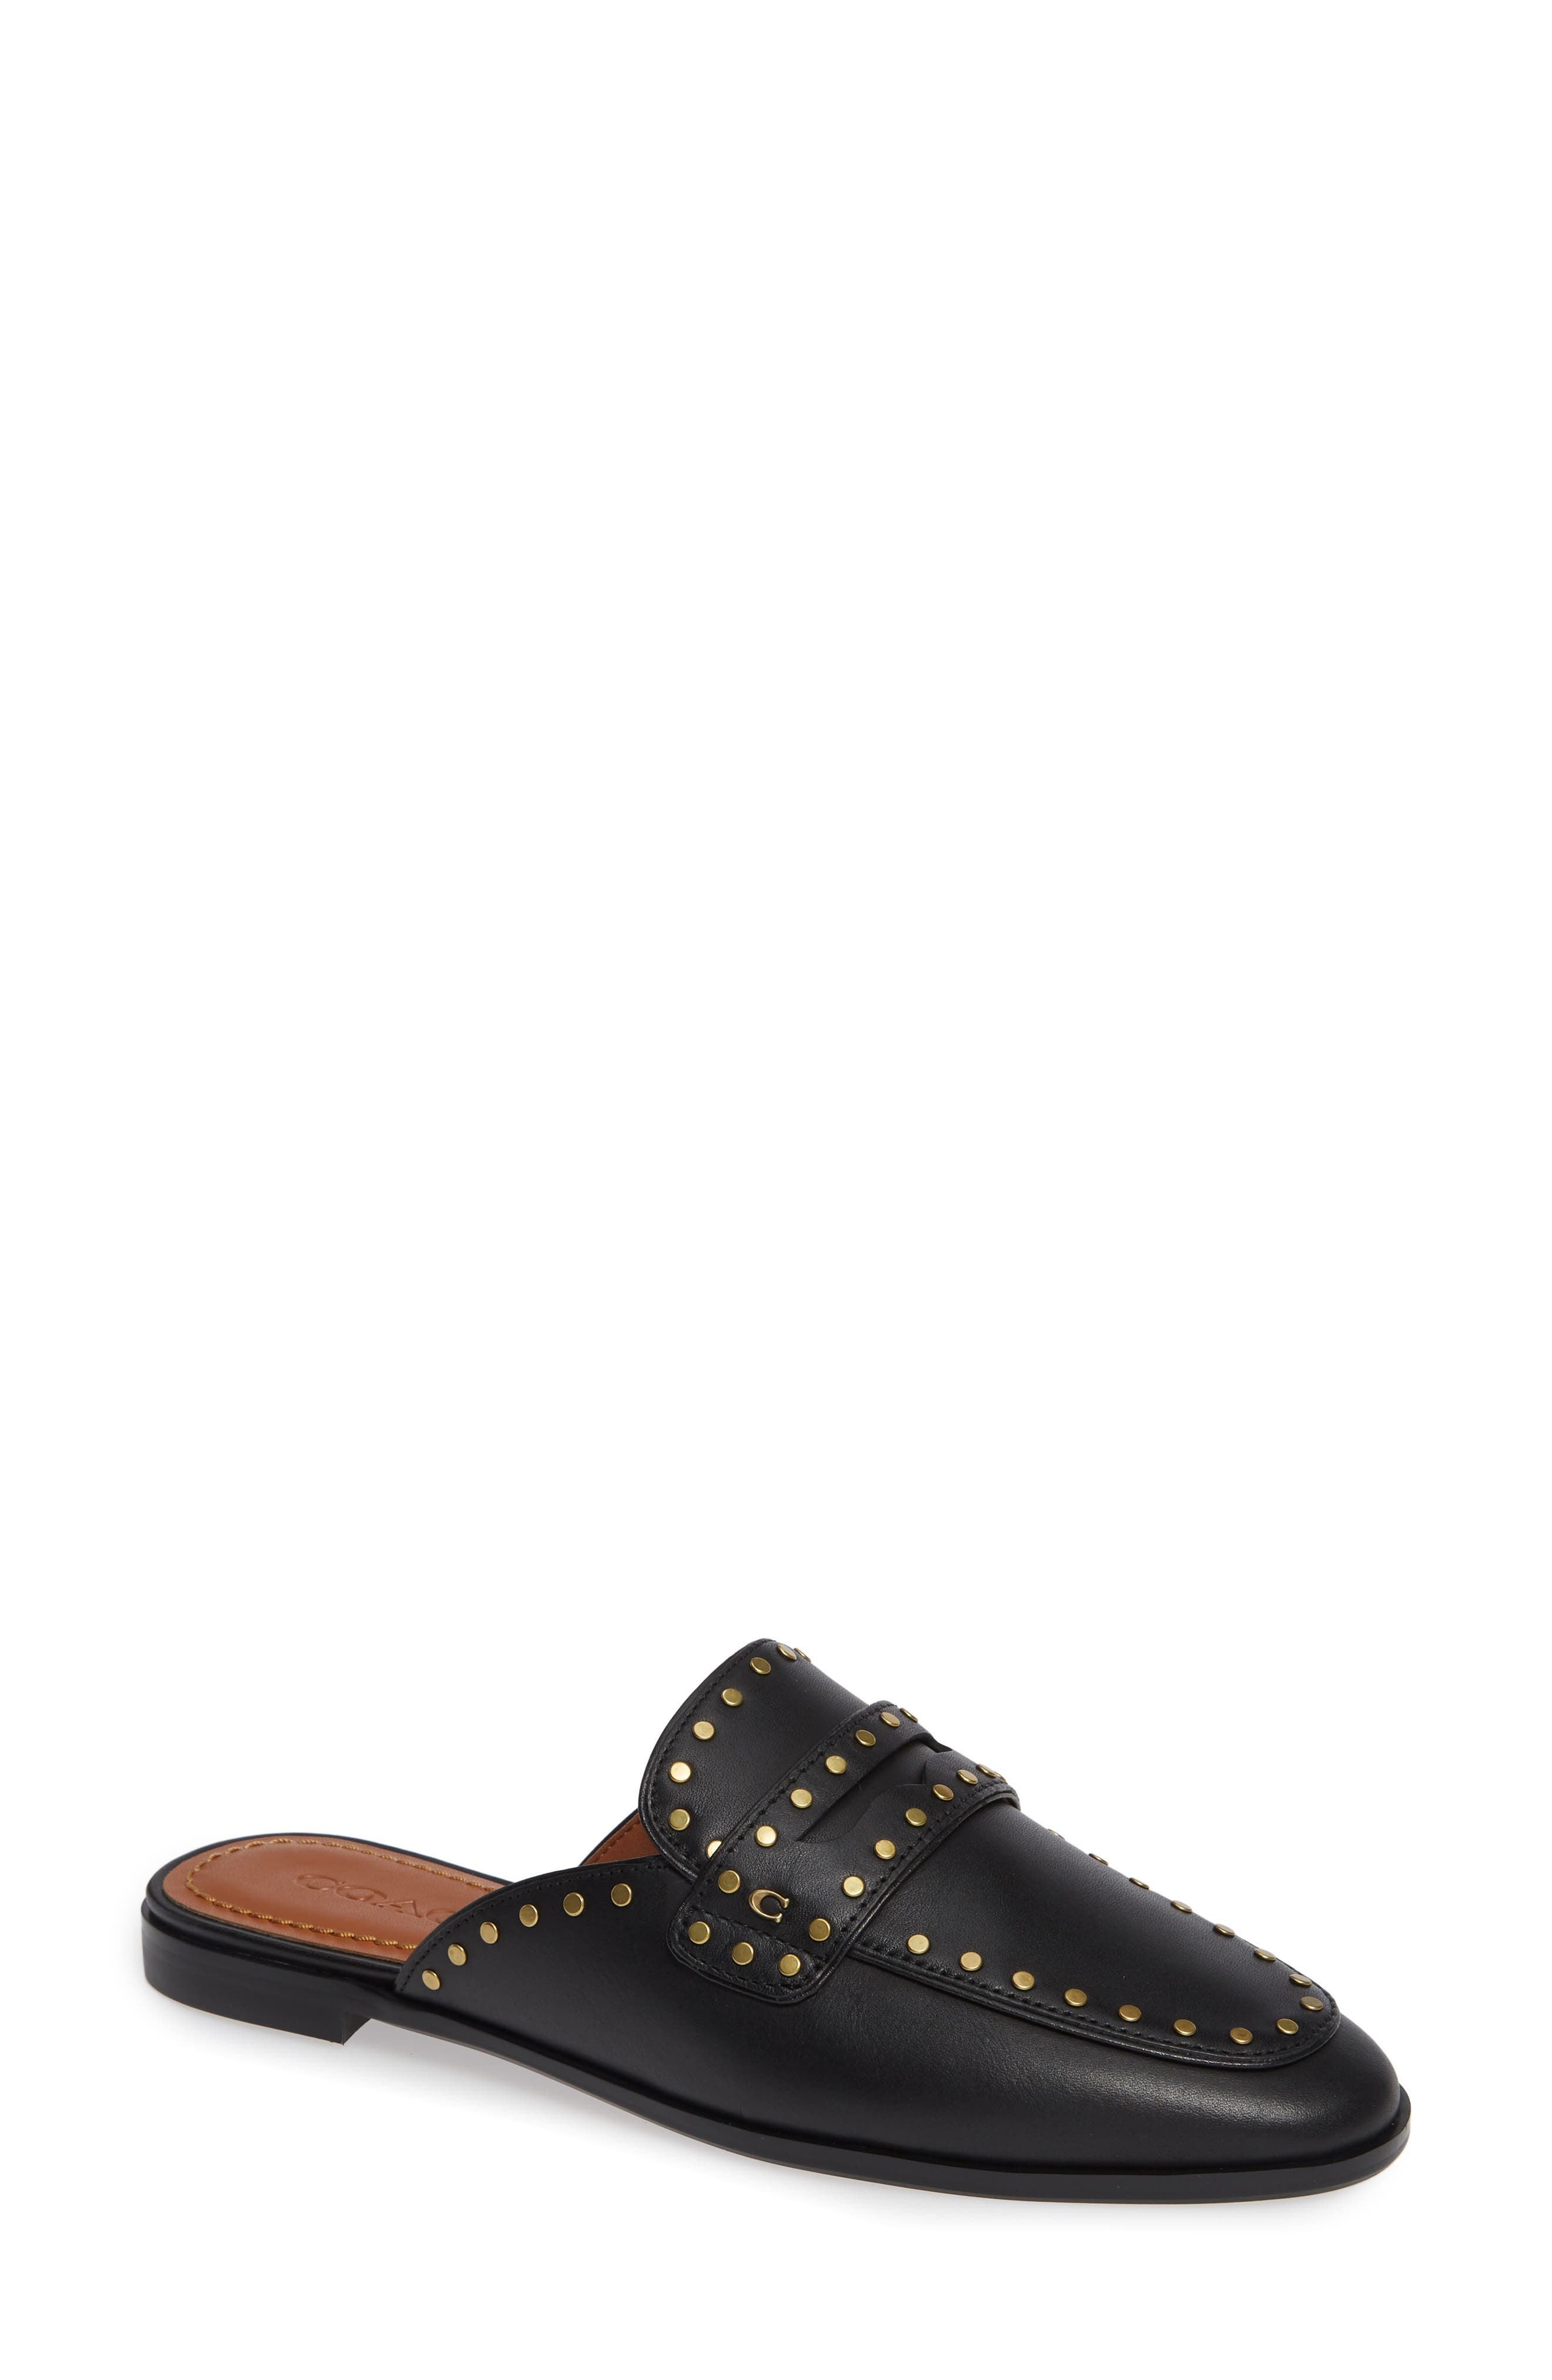 Fiona Loafer Mule,                             Main thumbnail 1, color,                             001